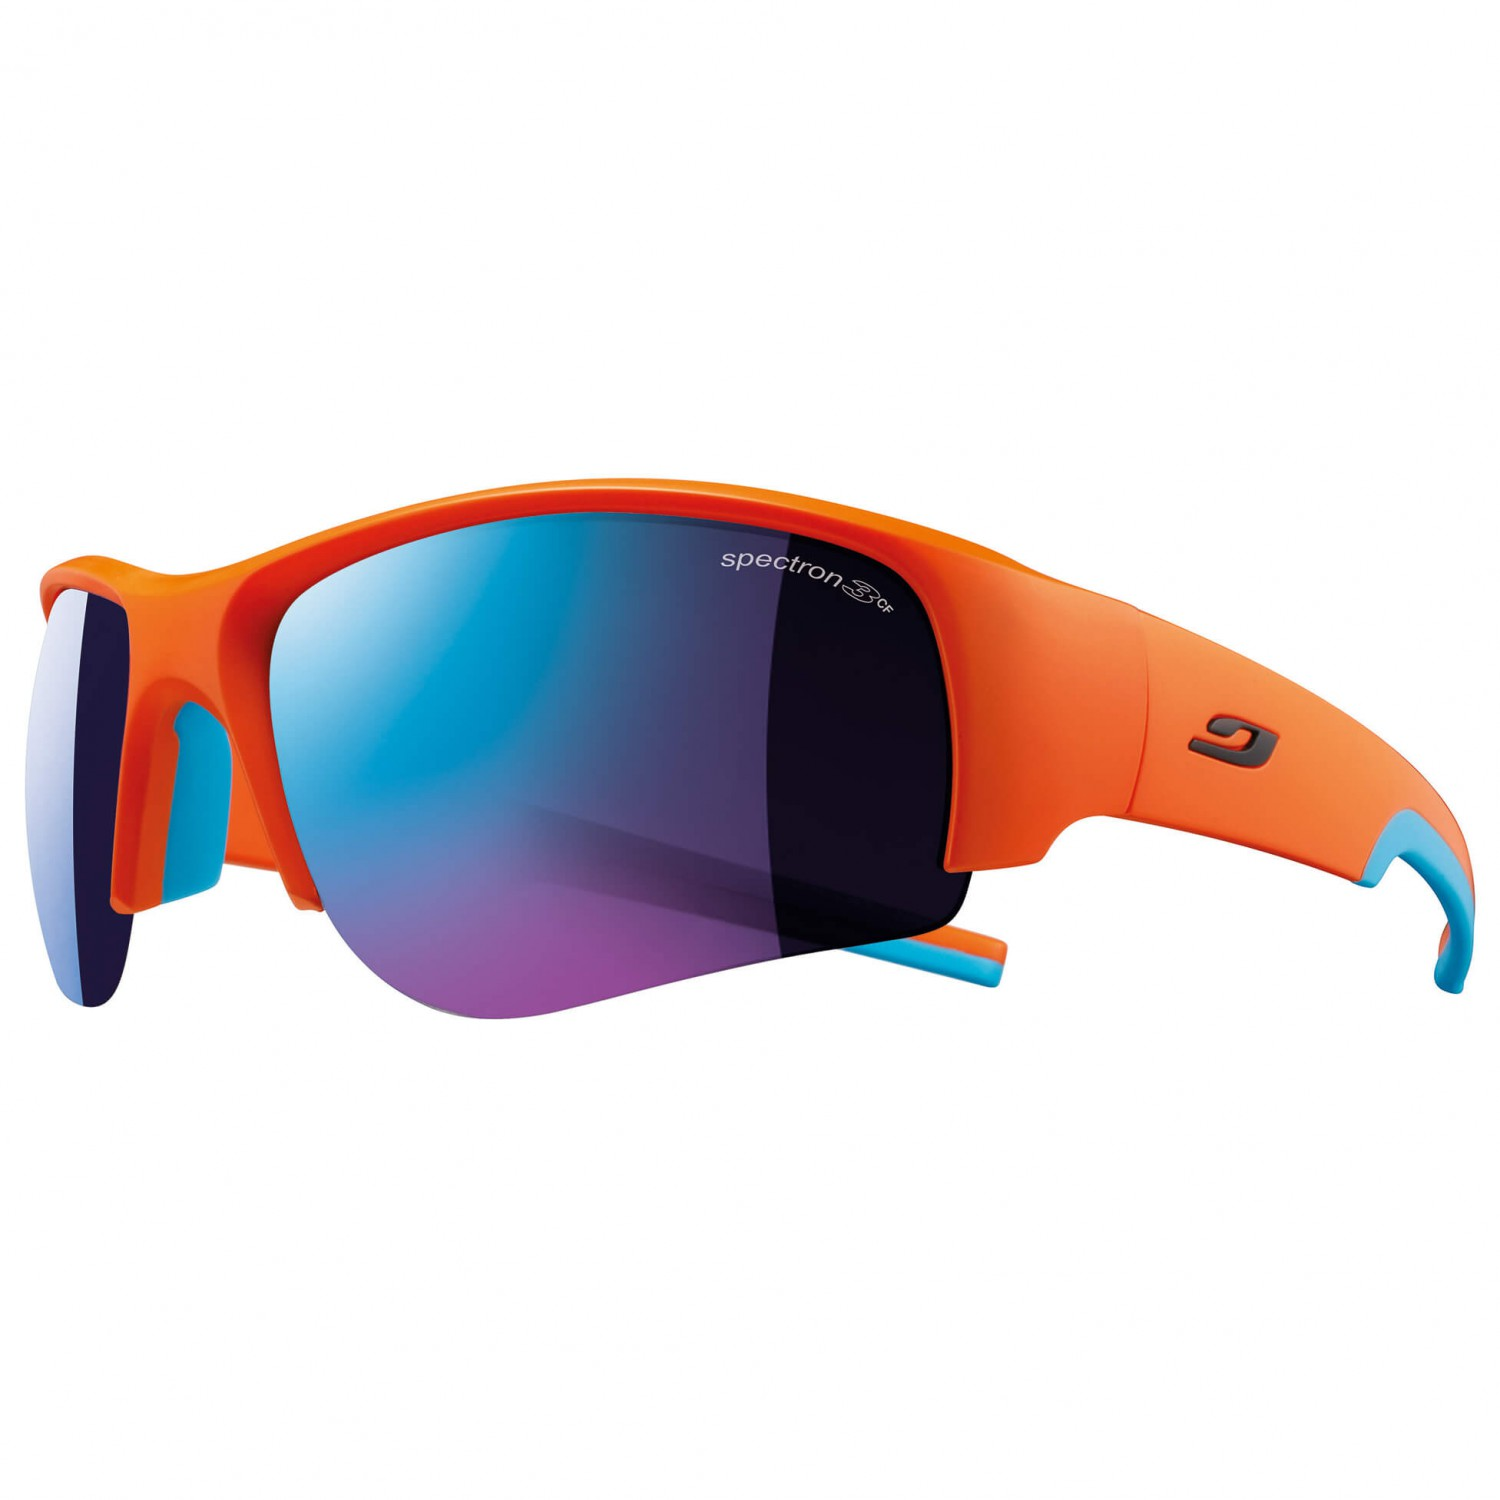 dc55d72ce0 Julbo - Dust Spectron 3 - Cycling glasses